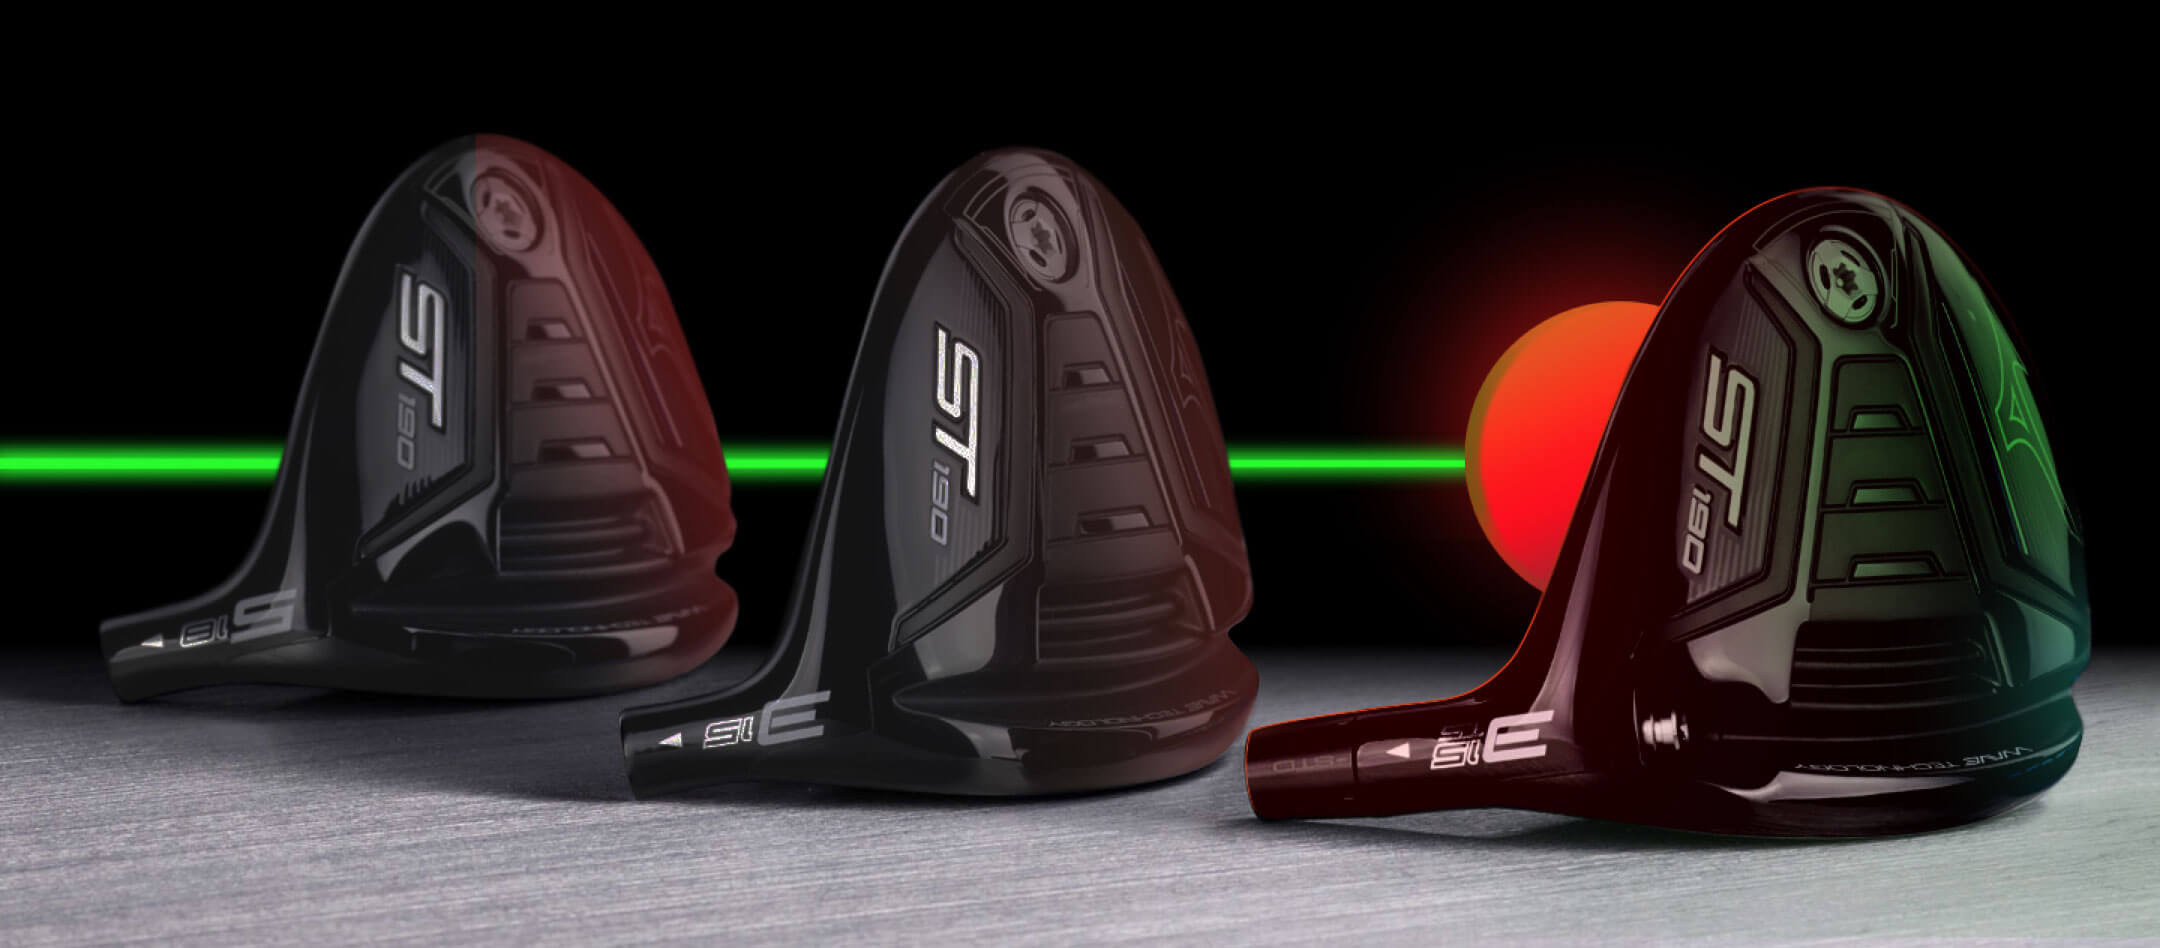 3 of the variations of the ST190 Fairway Wood with a Mizuno Ball